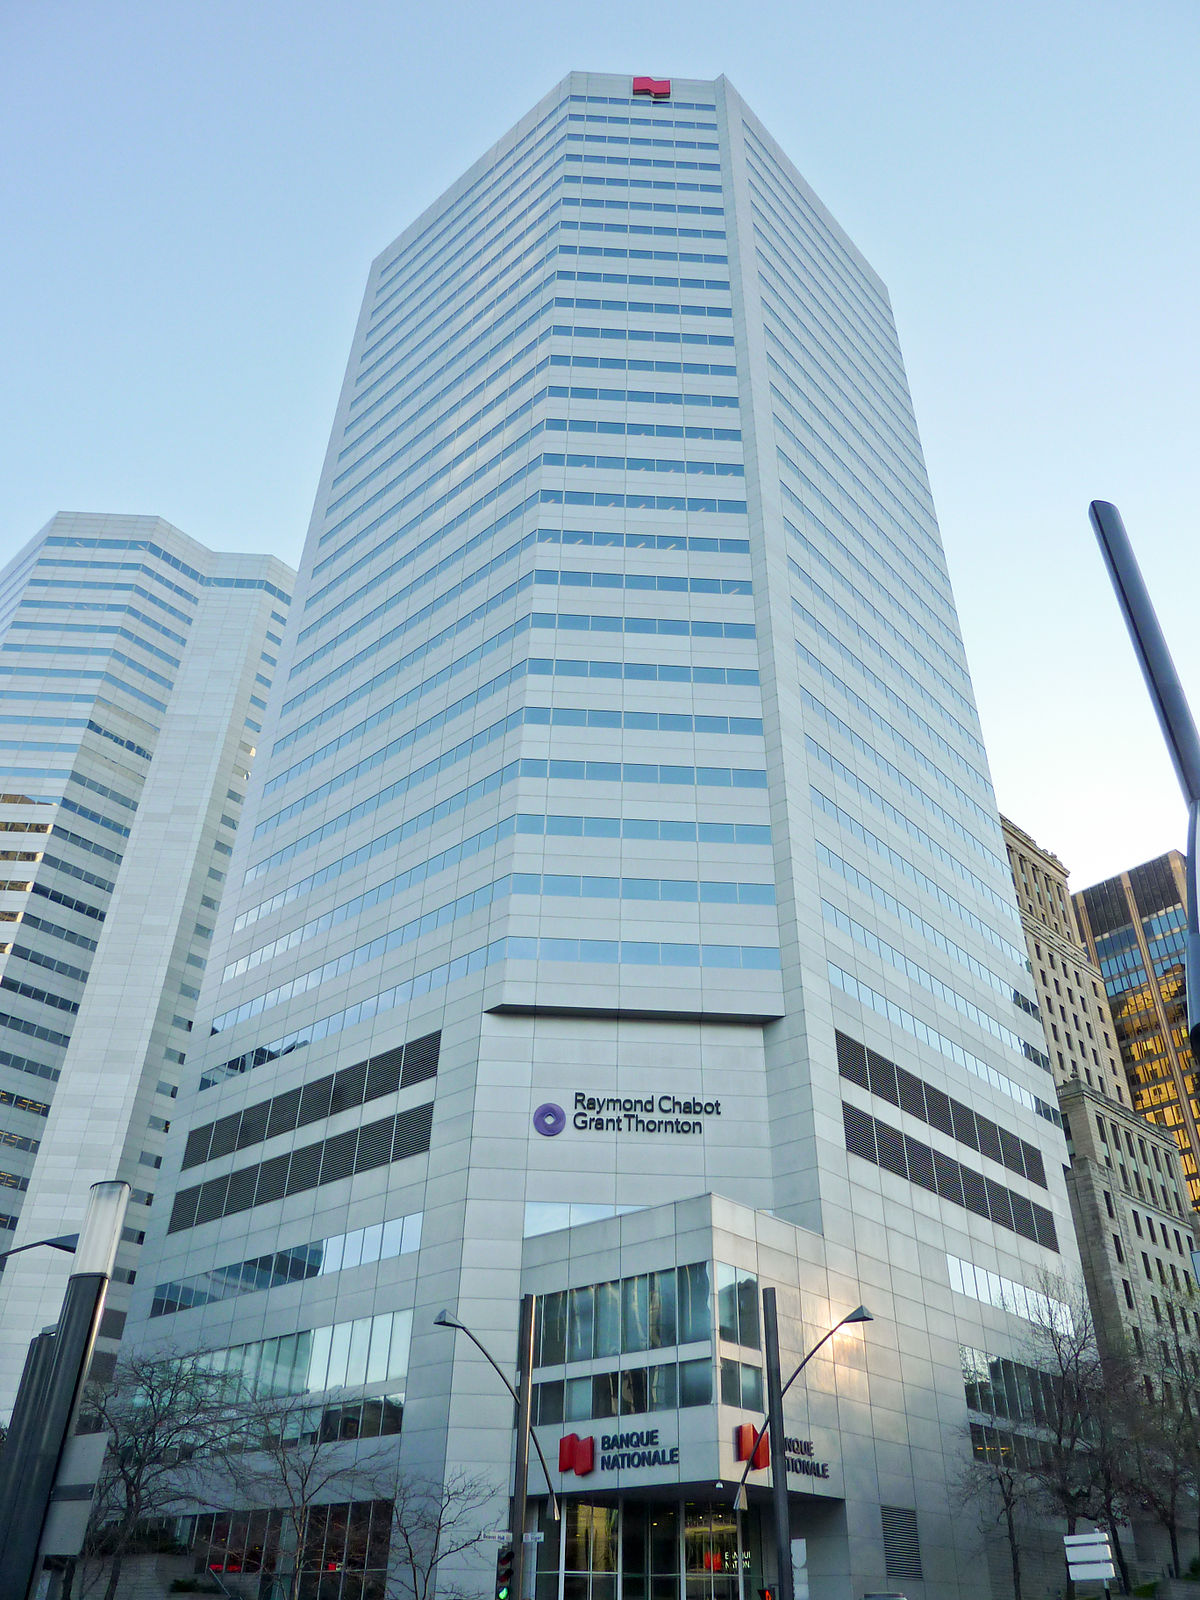 Raymond chabot grant thornton wikipedia for Assurance banque nationale maison